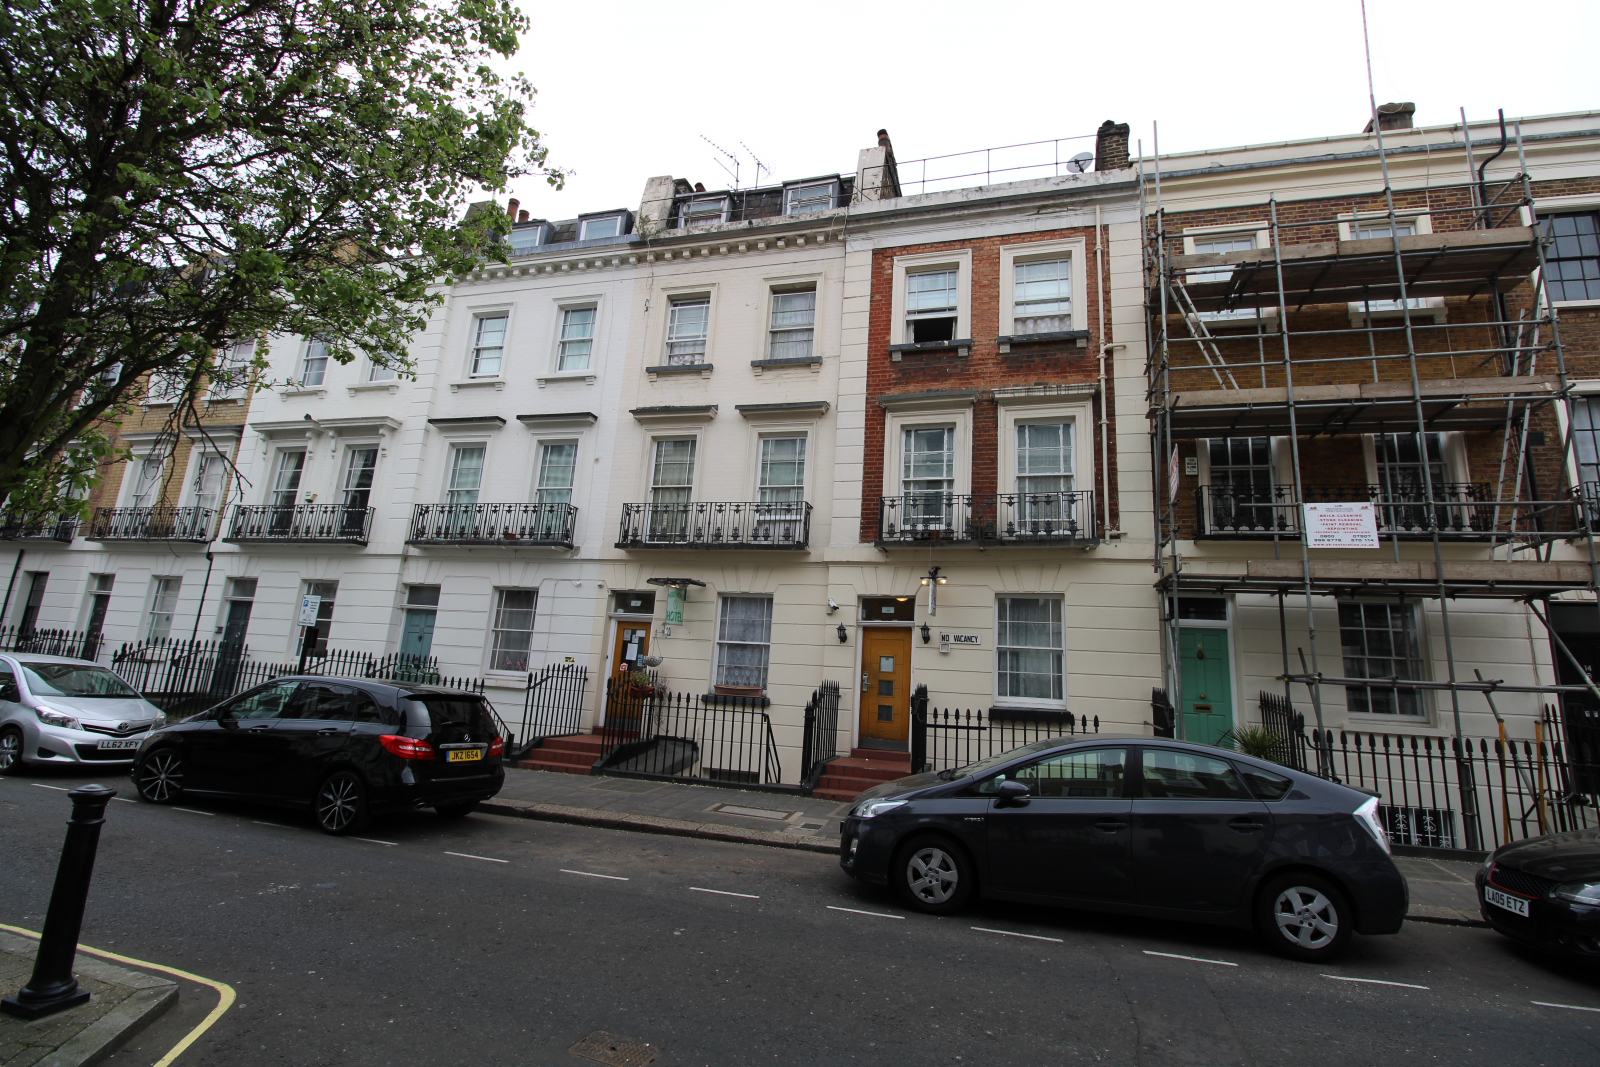 London Properties are pleased to offer to the market Established bed & breakfast 26 letting rooms Two interconnecting period buildings Close to Victoria Underground & Coach Station